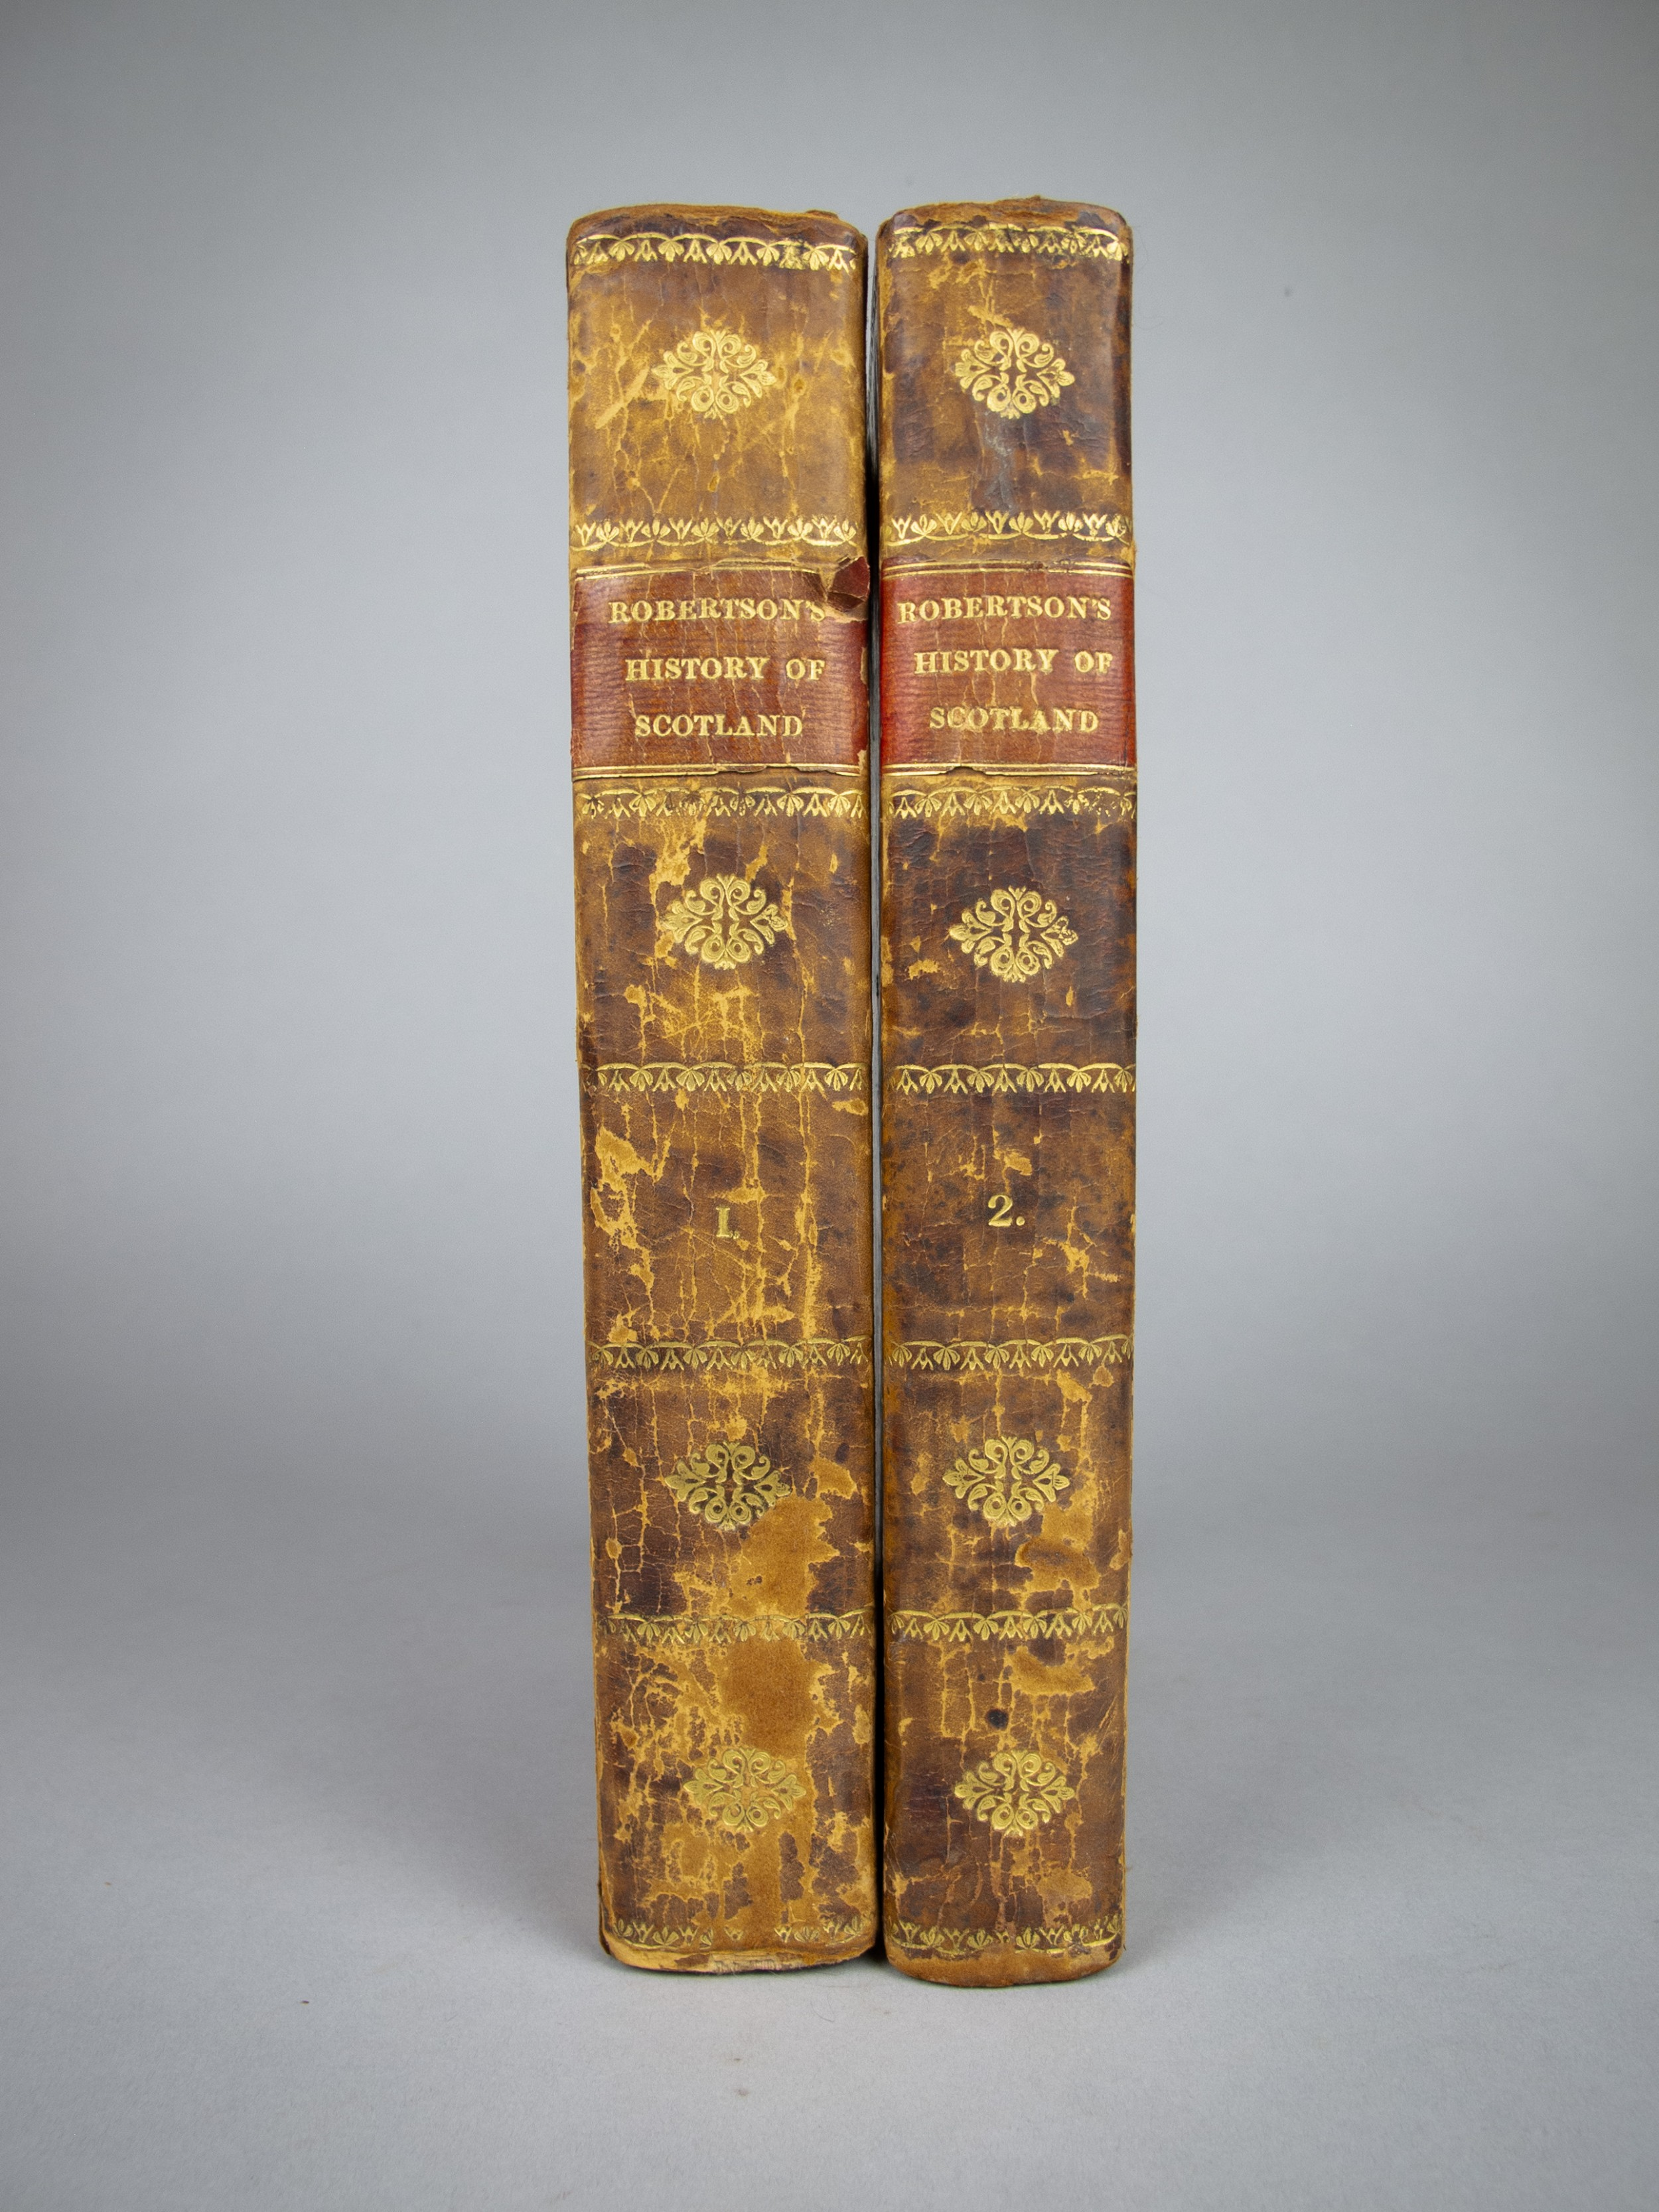 1827 the works of william robertson the history of scotland two volumes